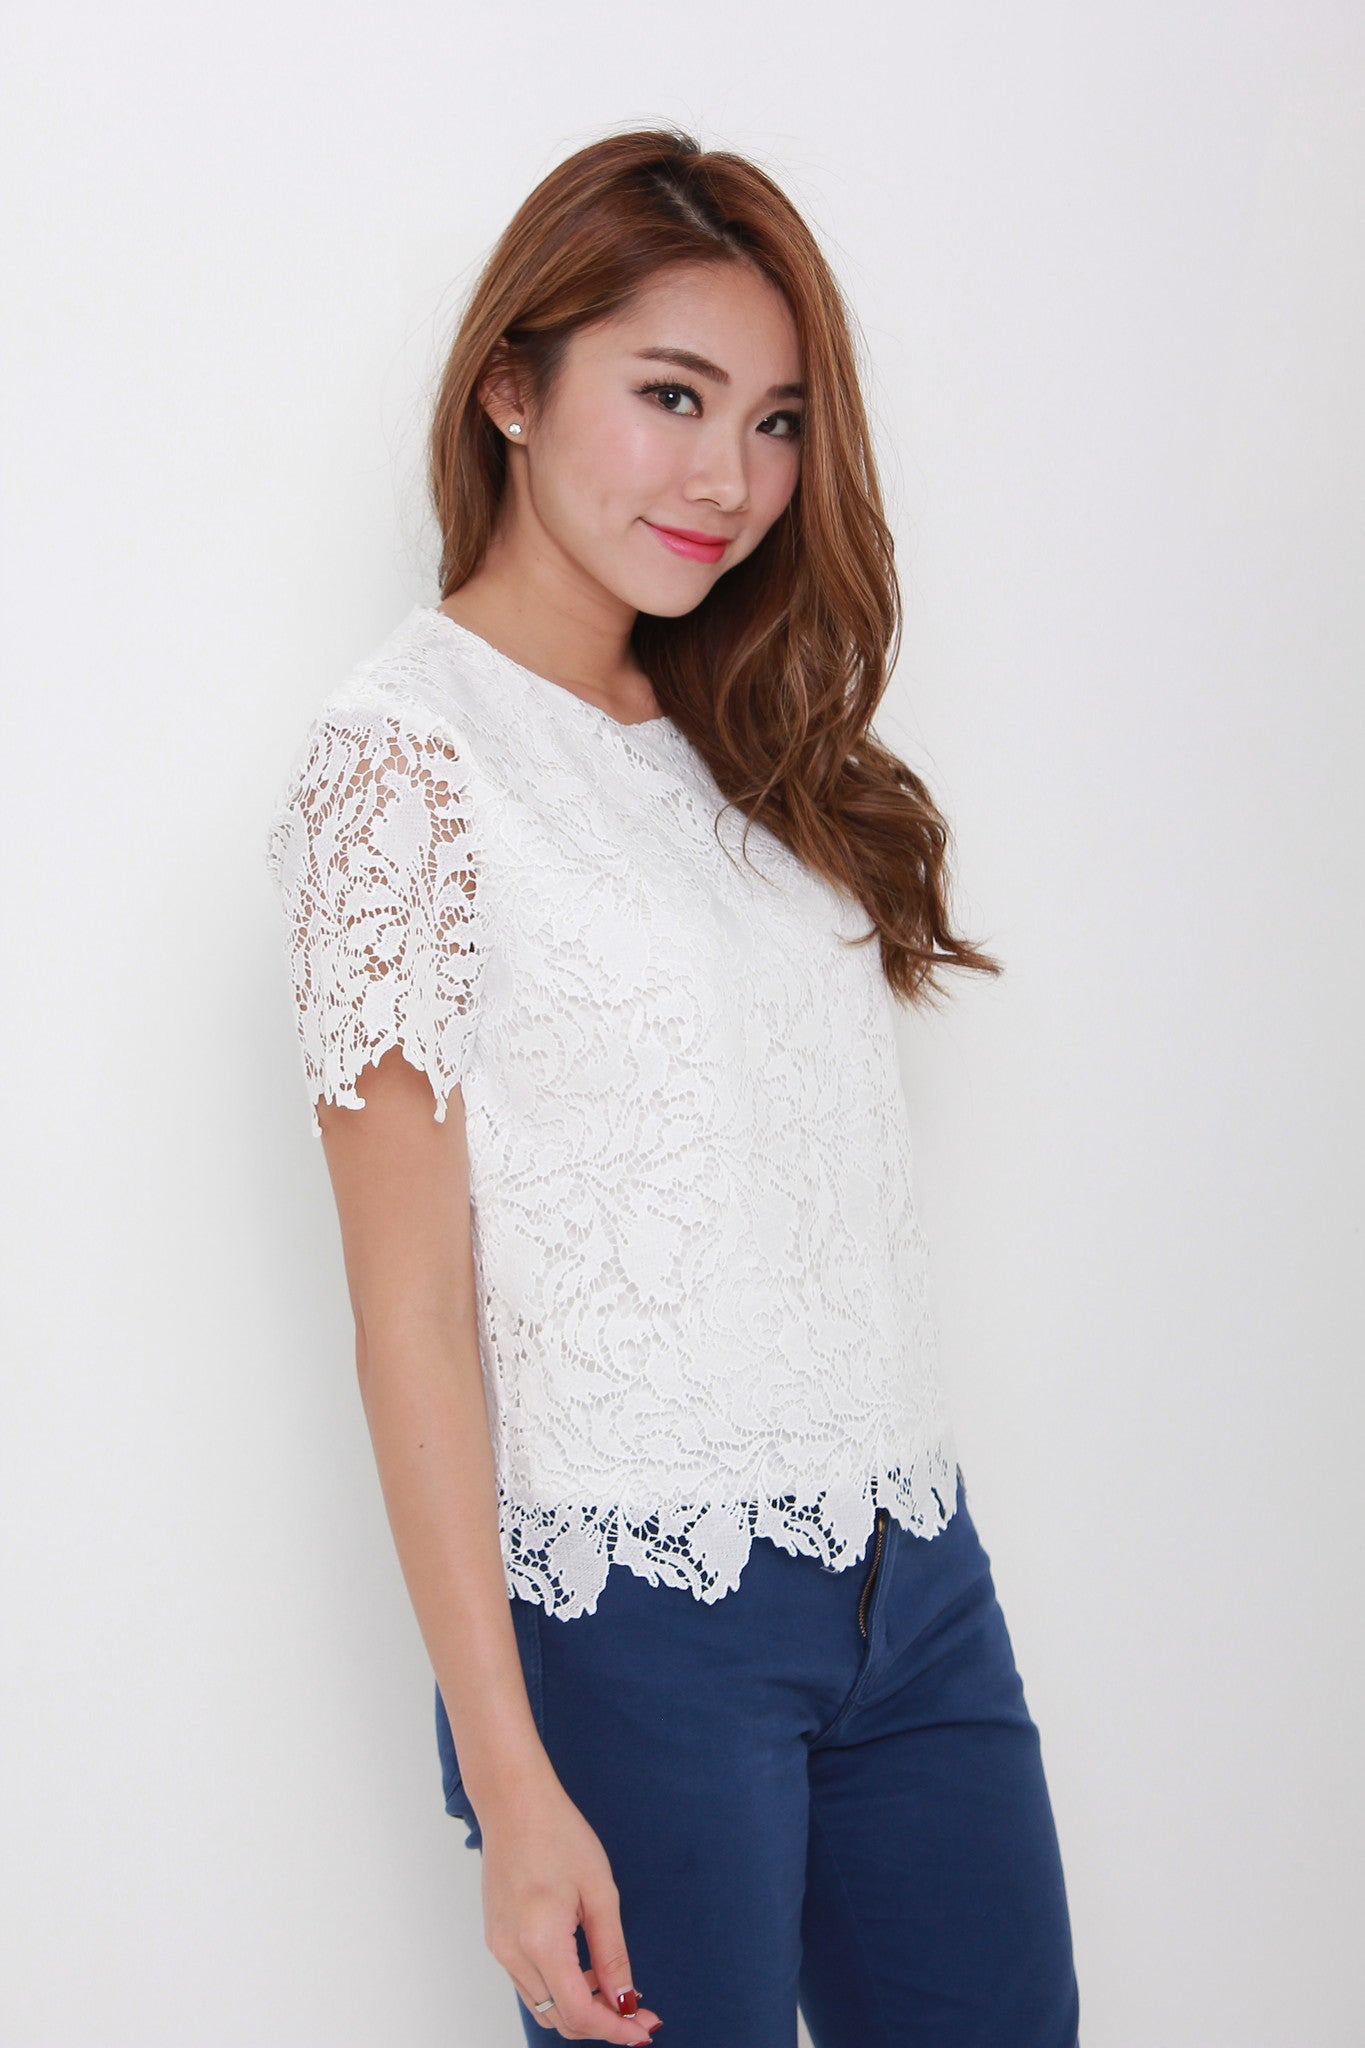 Athena Scallop Crochet Top in White